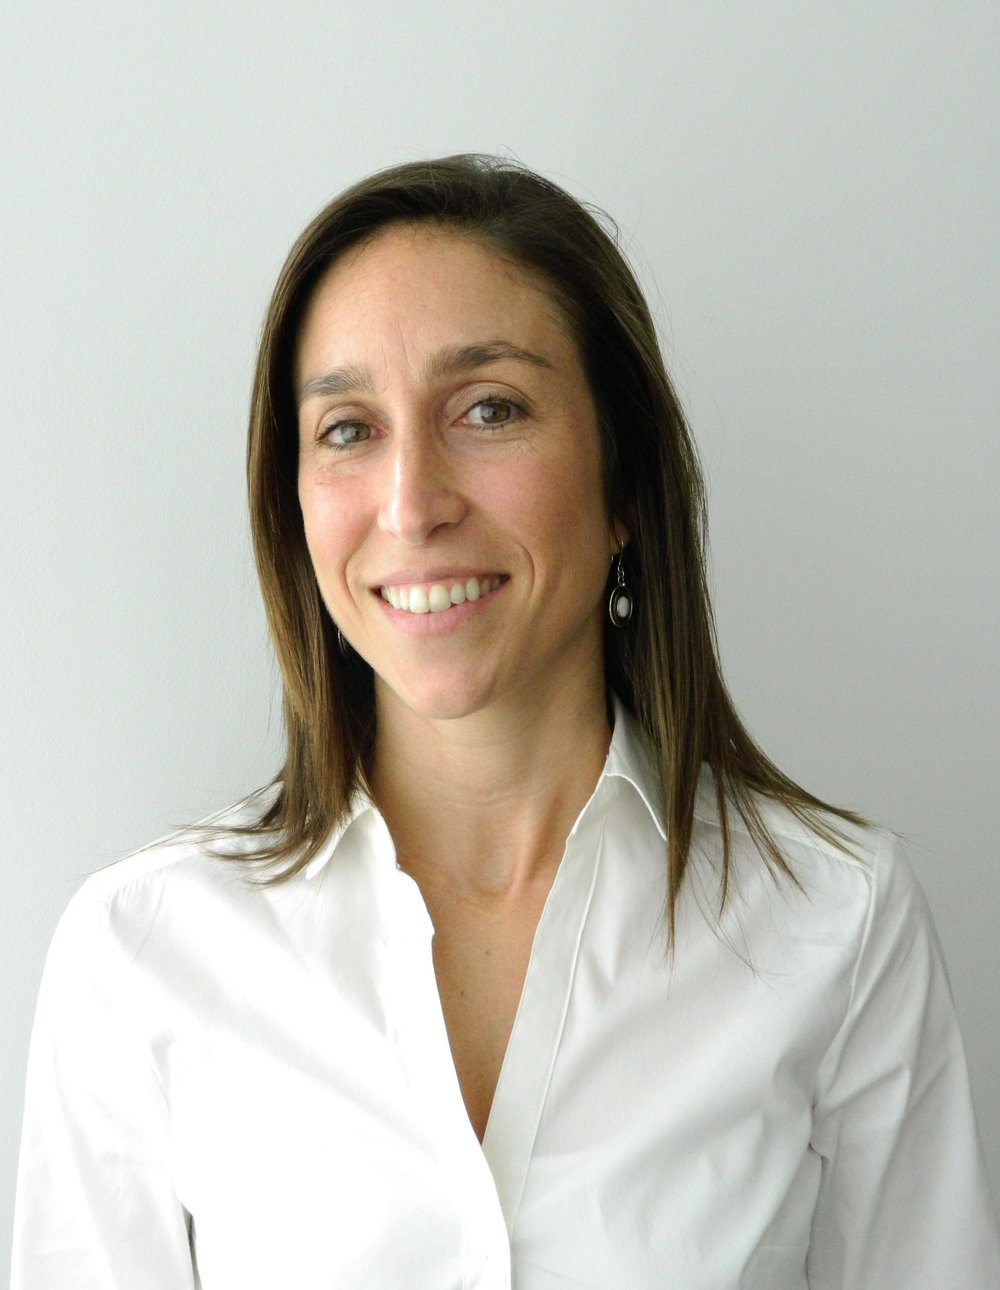 Andrea Dominguez, Oikocredit